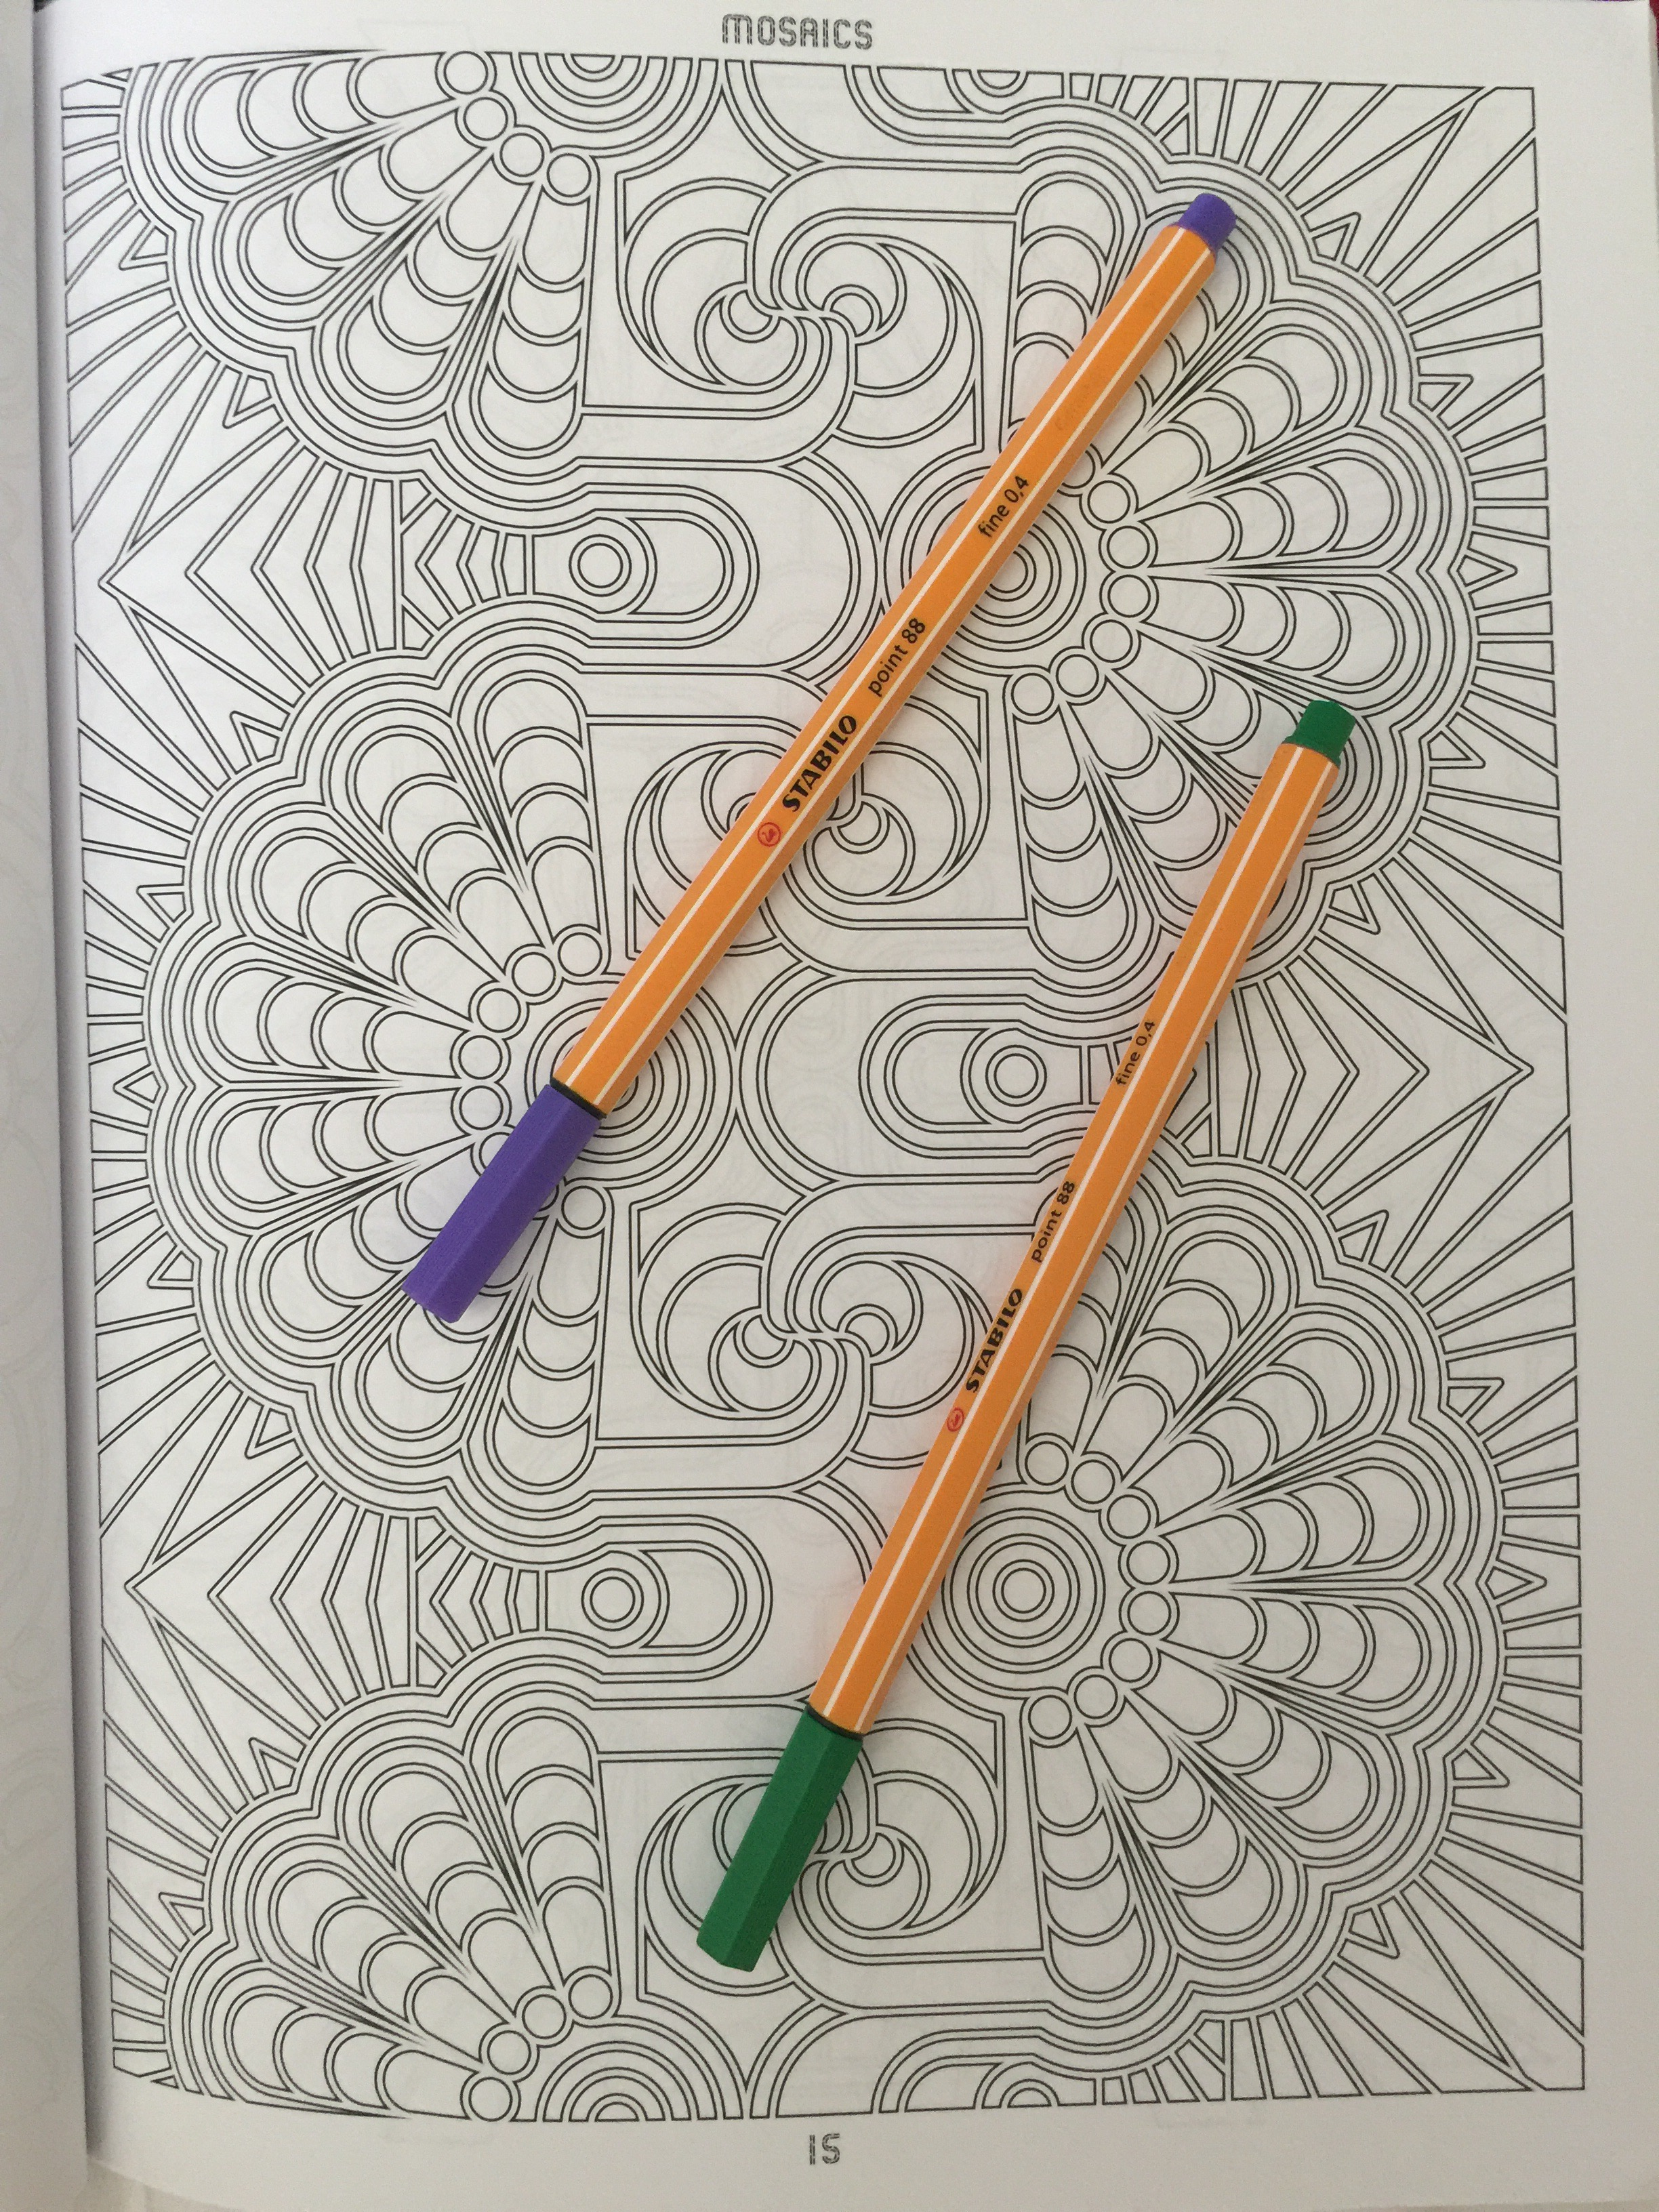 adult colouring coloring art therapy coloured colored colour color stress relief pencil   completed mosaics book review colouring reviews techniques